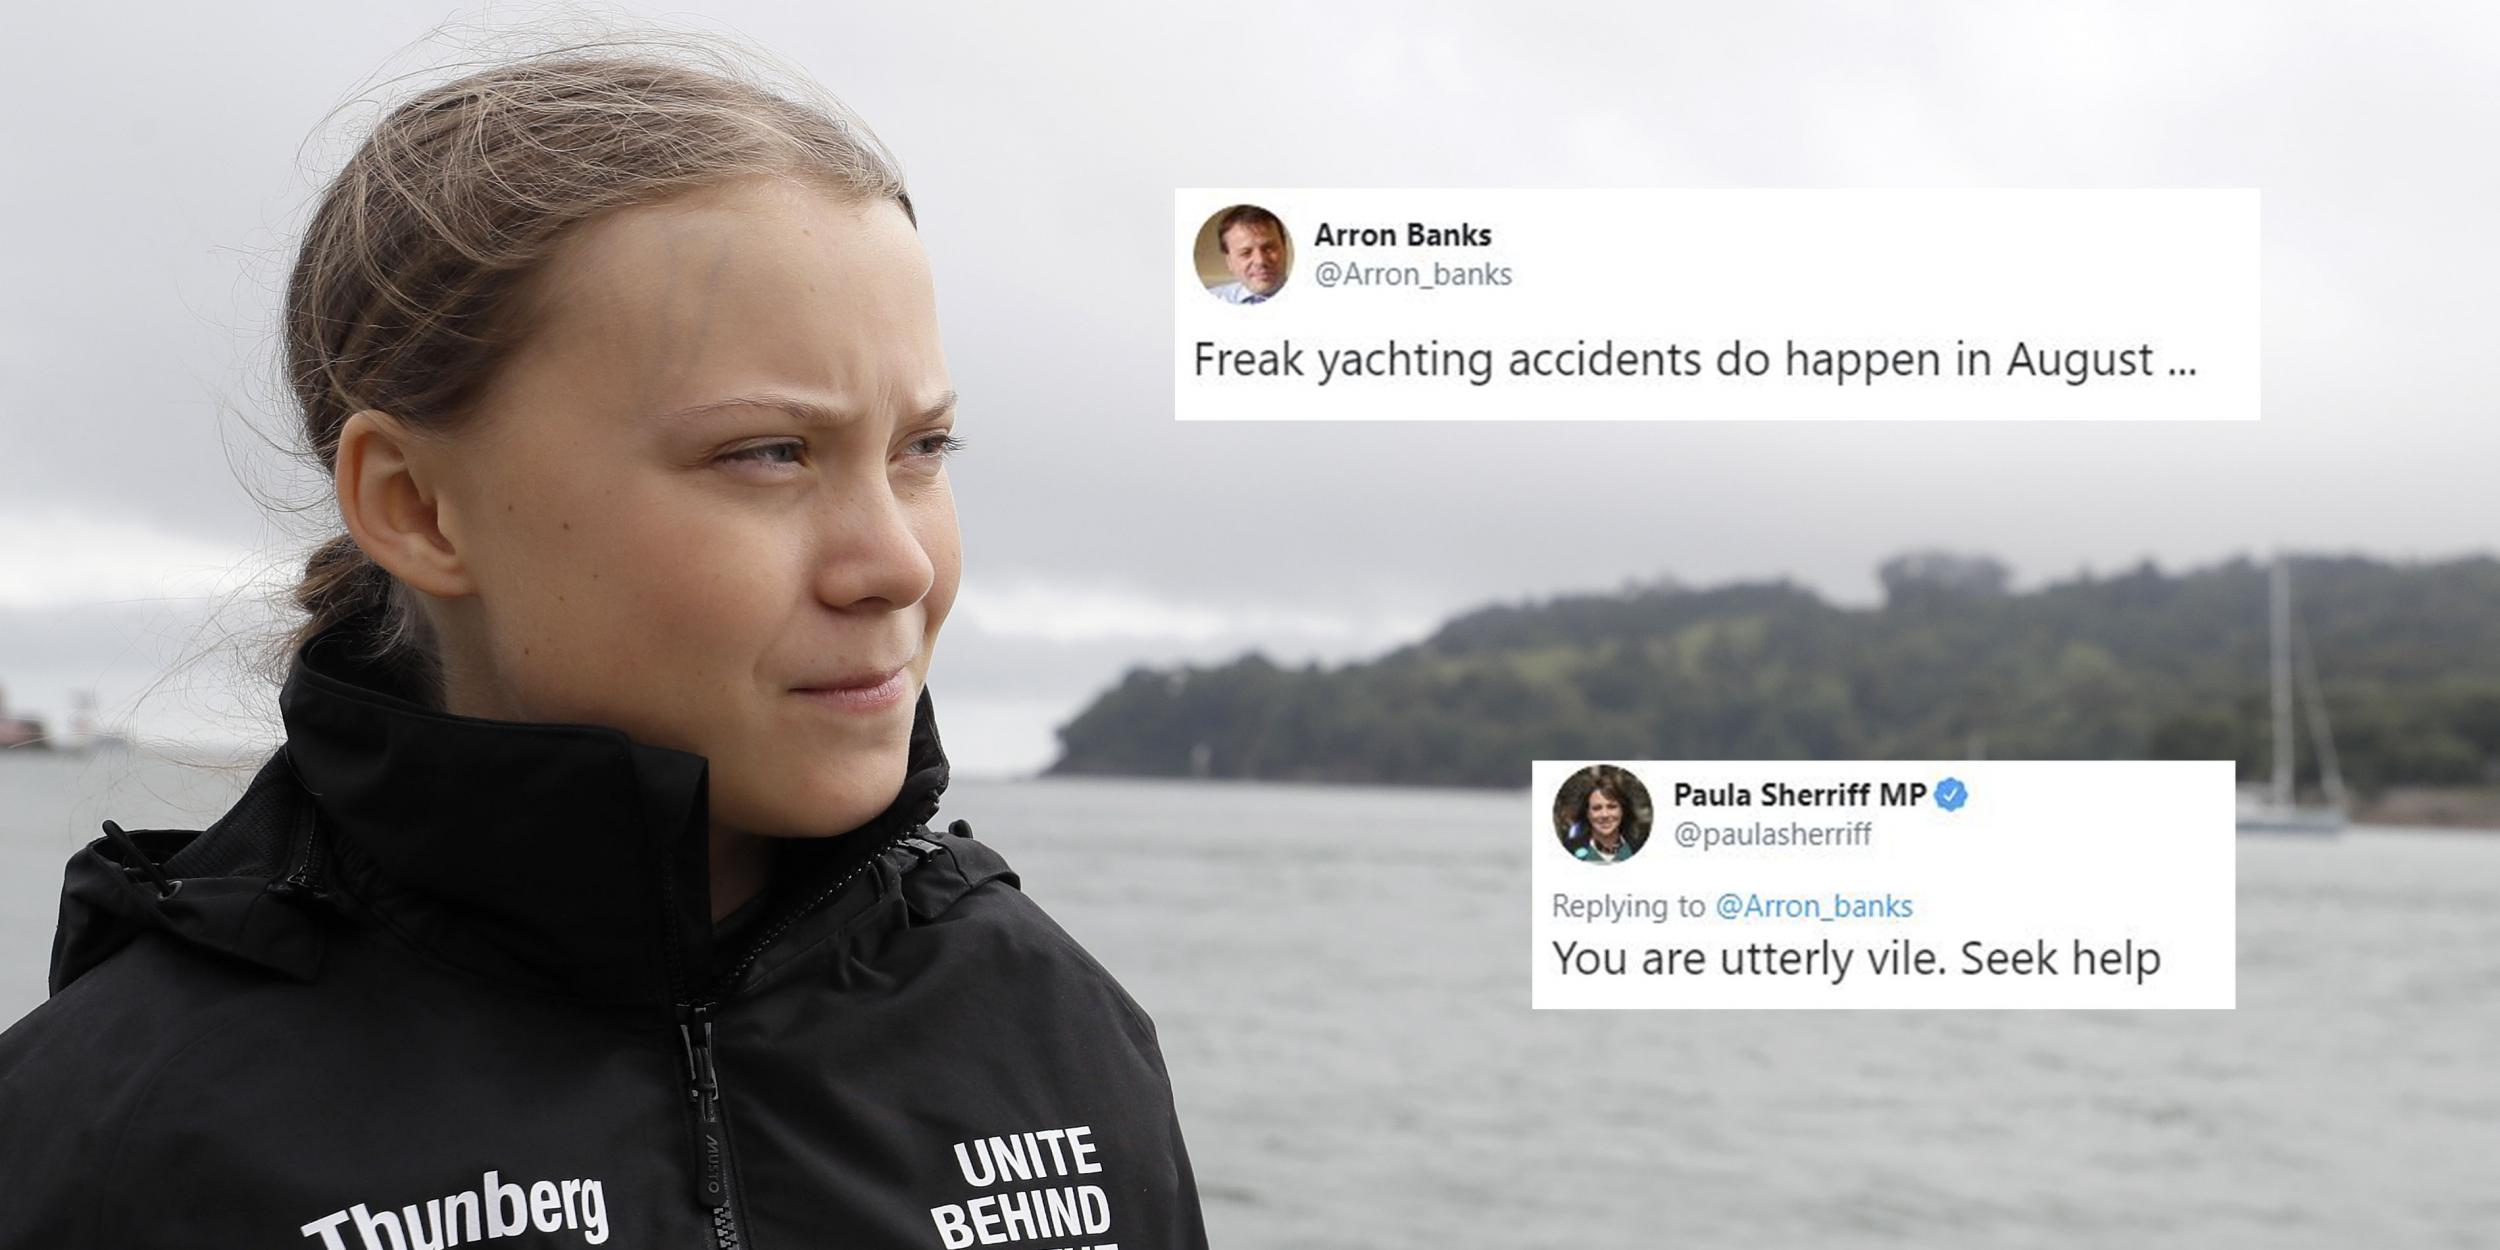 Brexiteer ridiculed for posting 'joke' about Greta Thunberg being in a 'freak yachting accident'